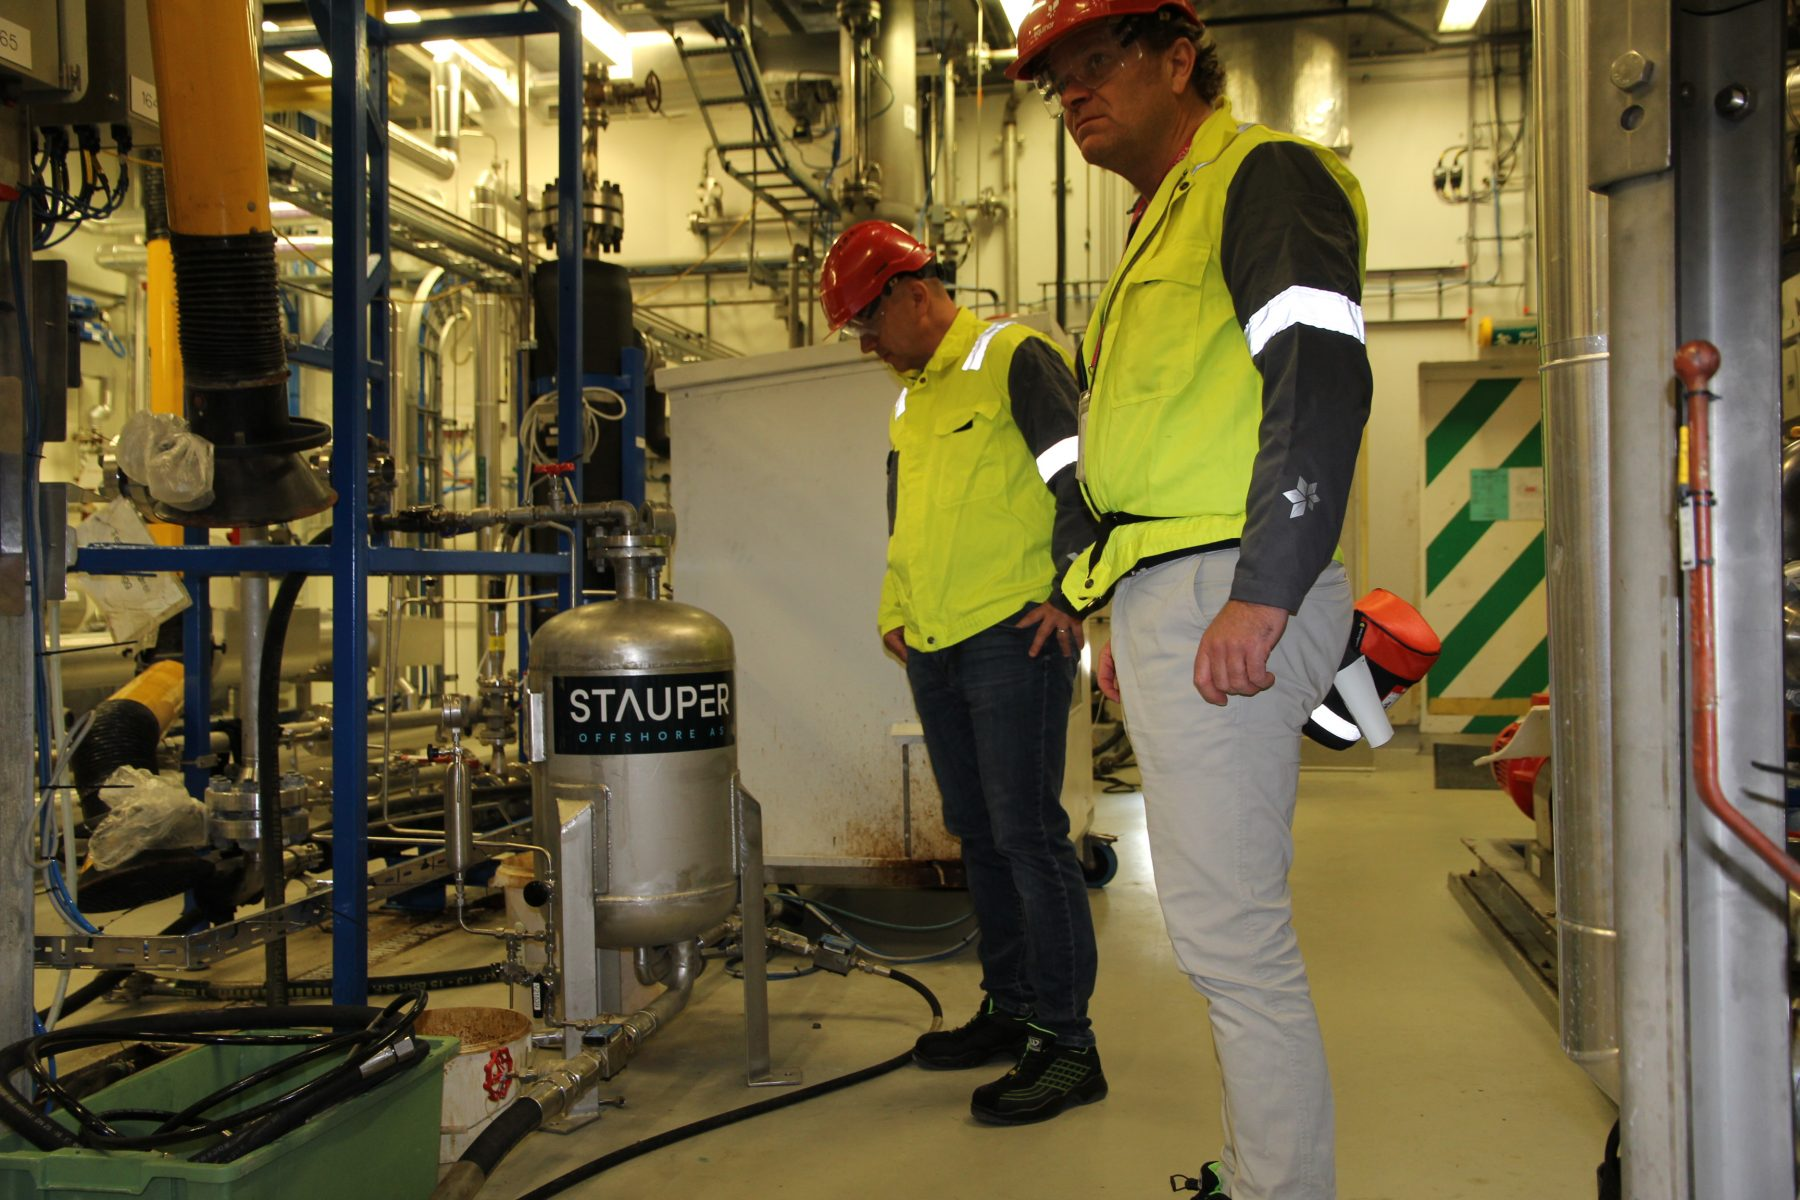 Leading operator completes an extensive test program of Stauper CFU